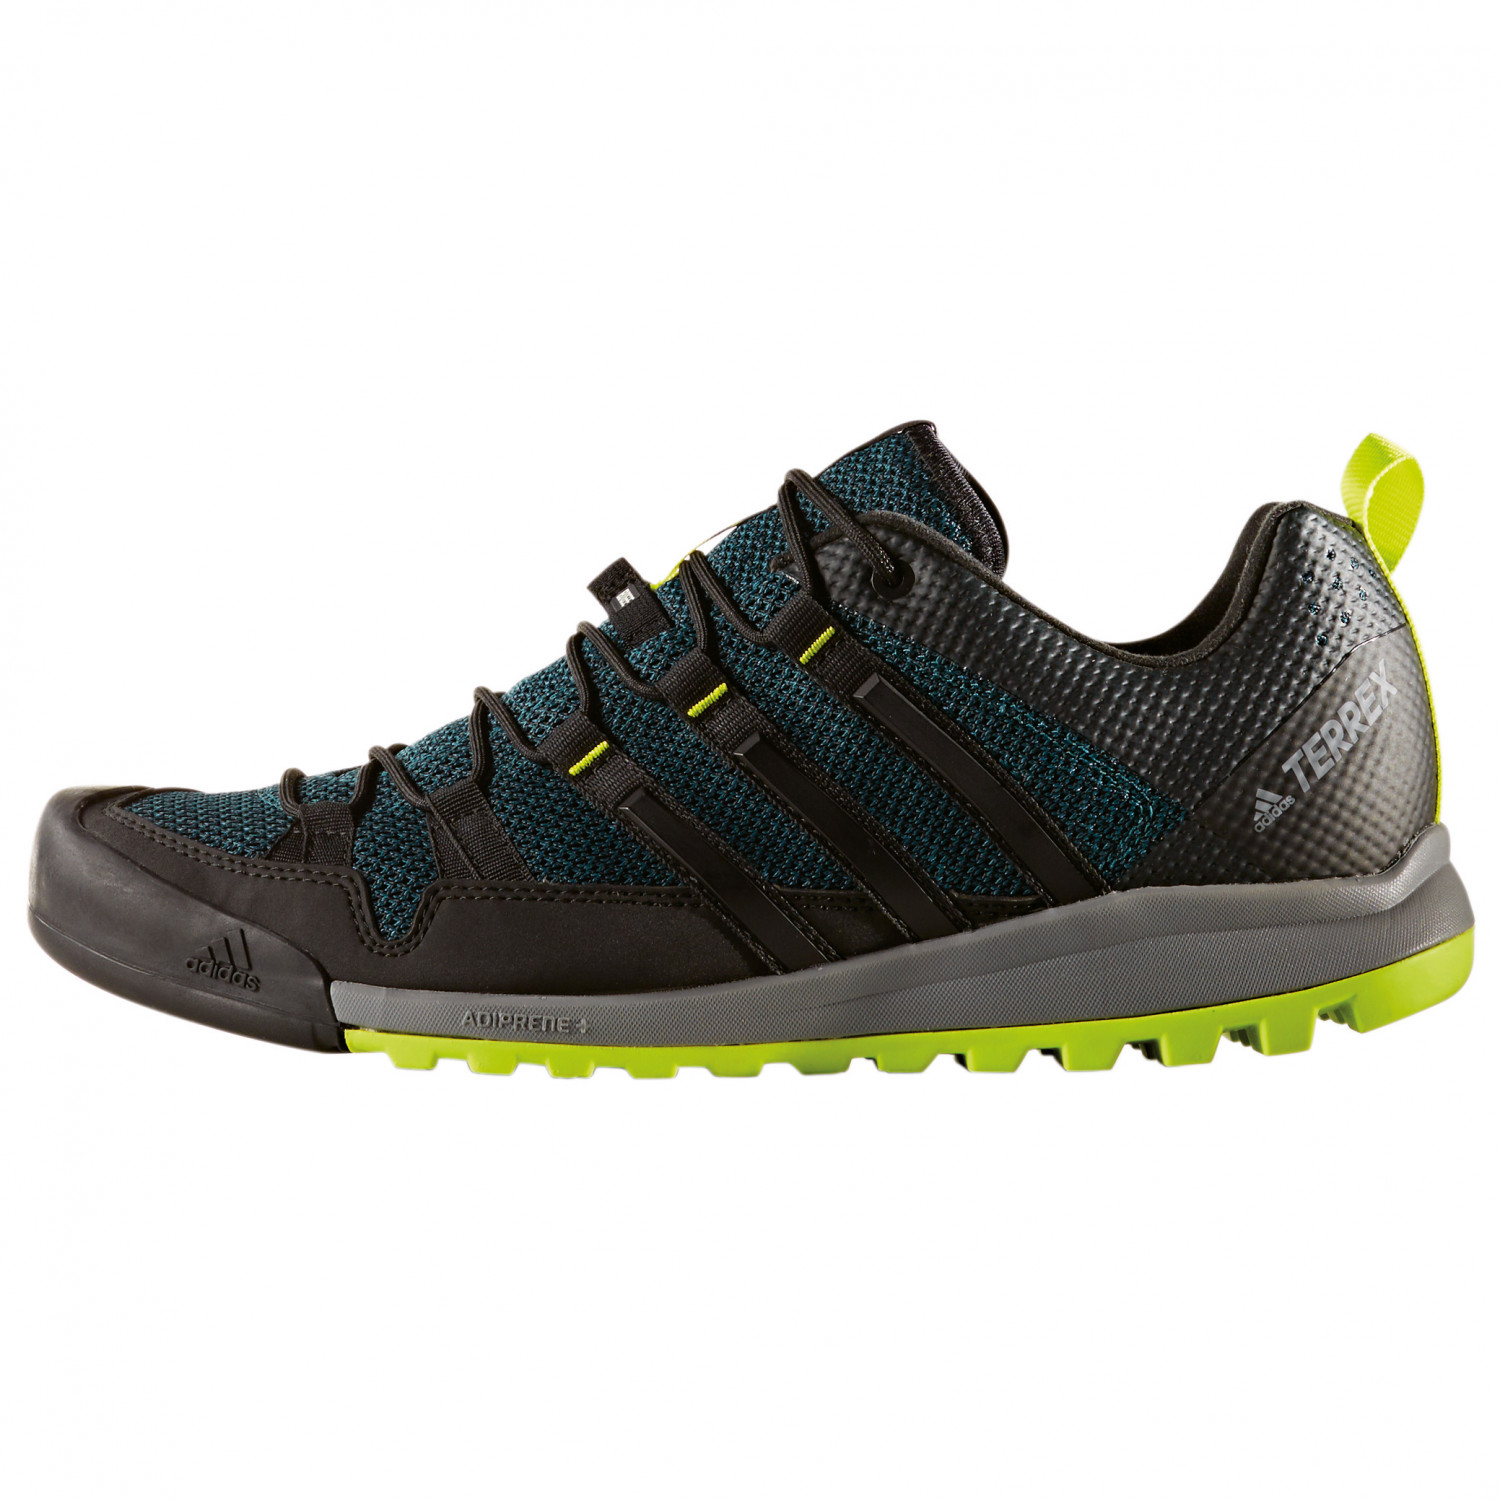 4881d97665f9 ... adidas - Terrex Solo - Approach shoes ...